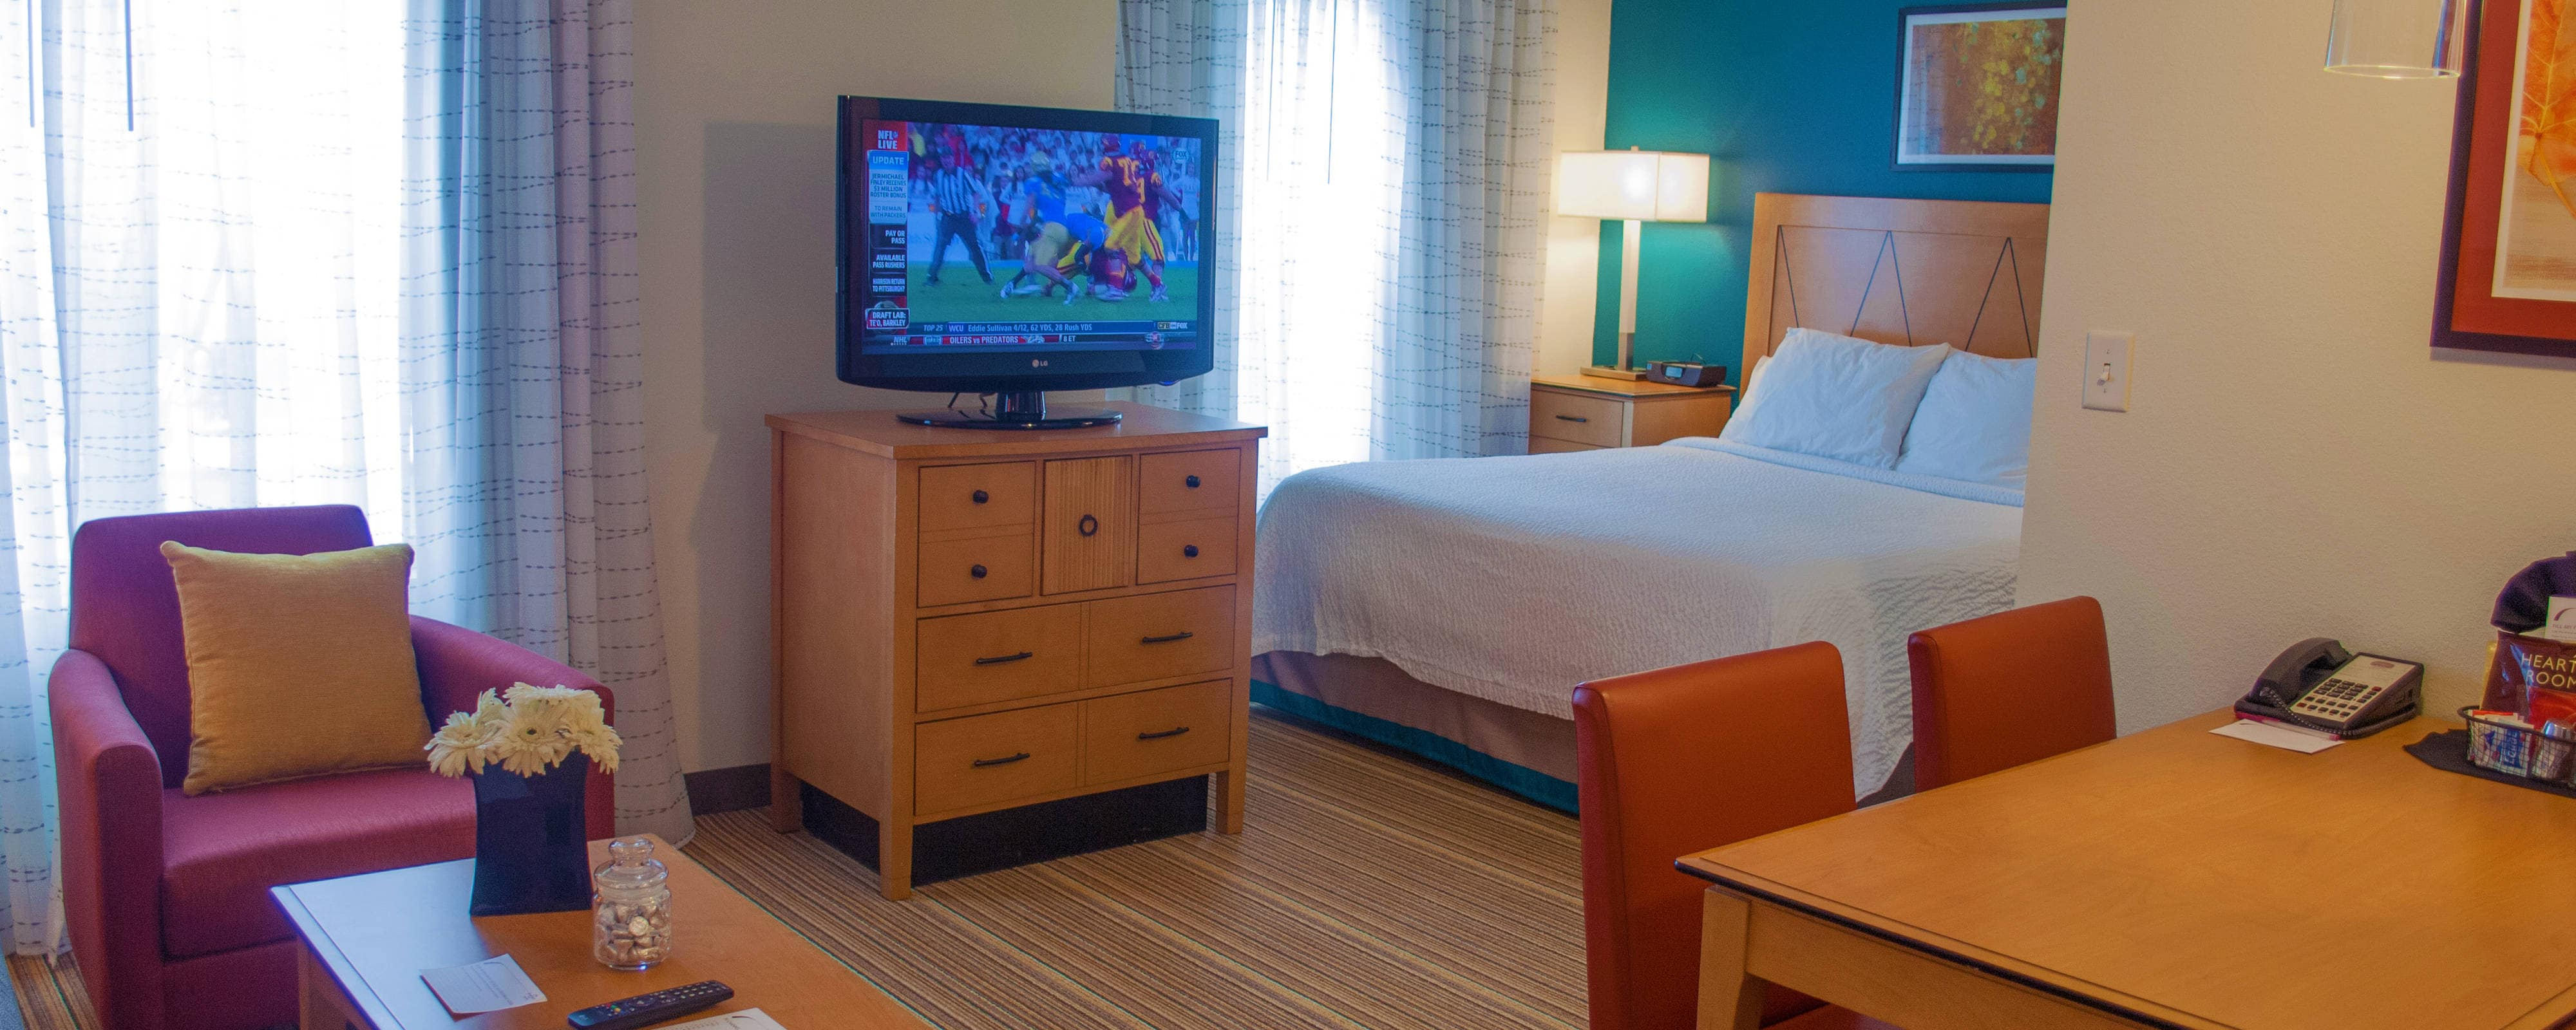 Harrisburg pa extended stay hotel